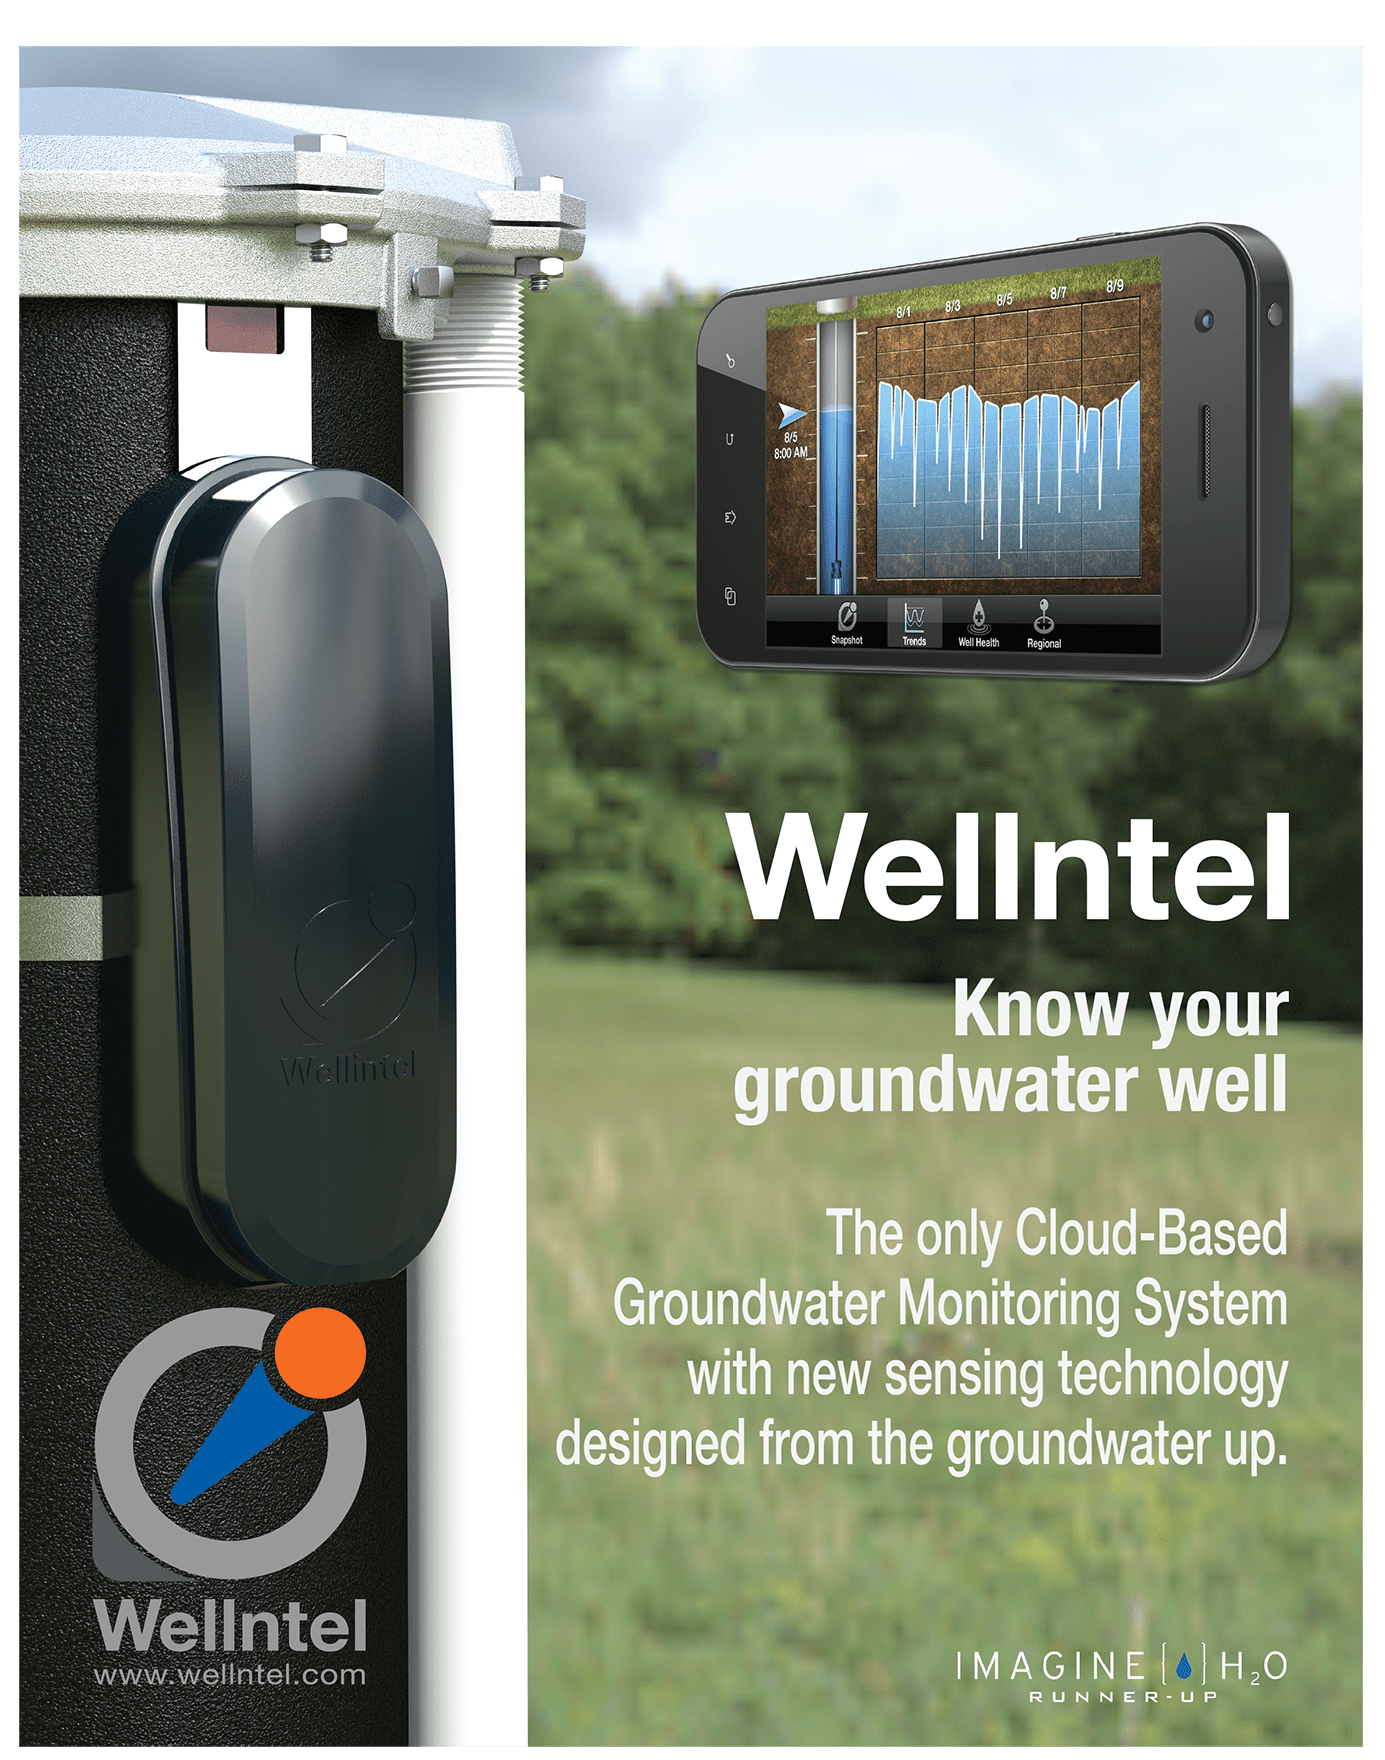 Wellntel - Know your Groundwater Well